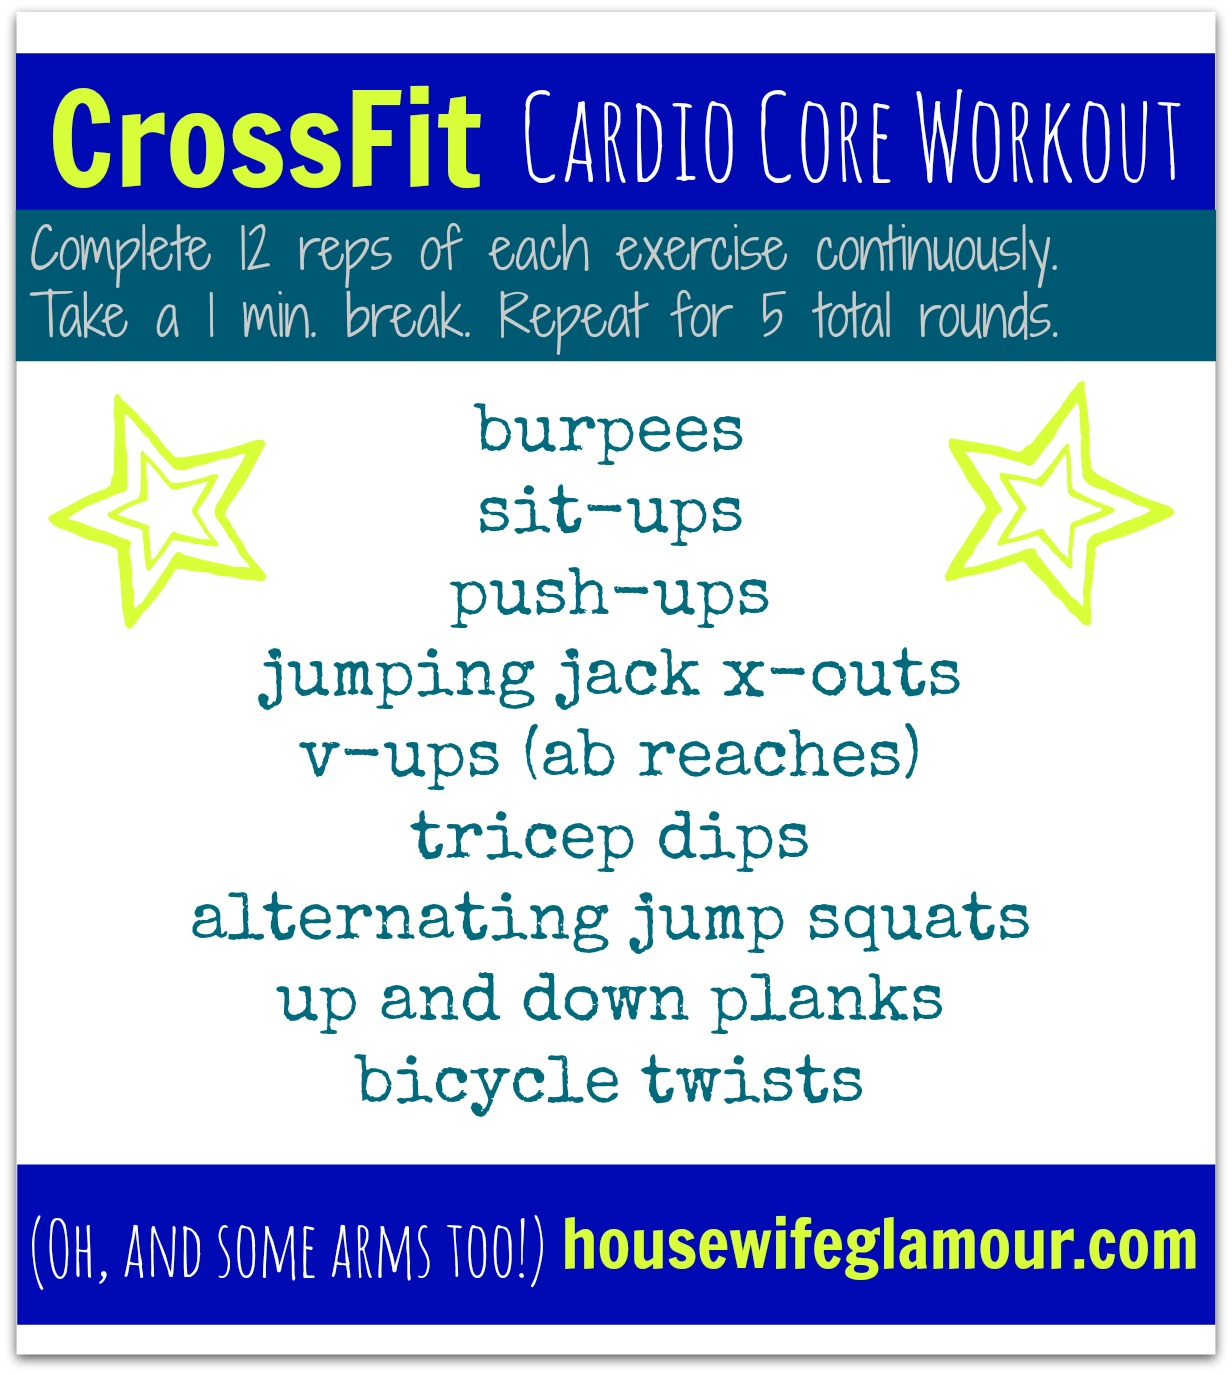 CrossFit Cardio Core Workout